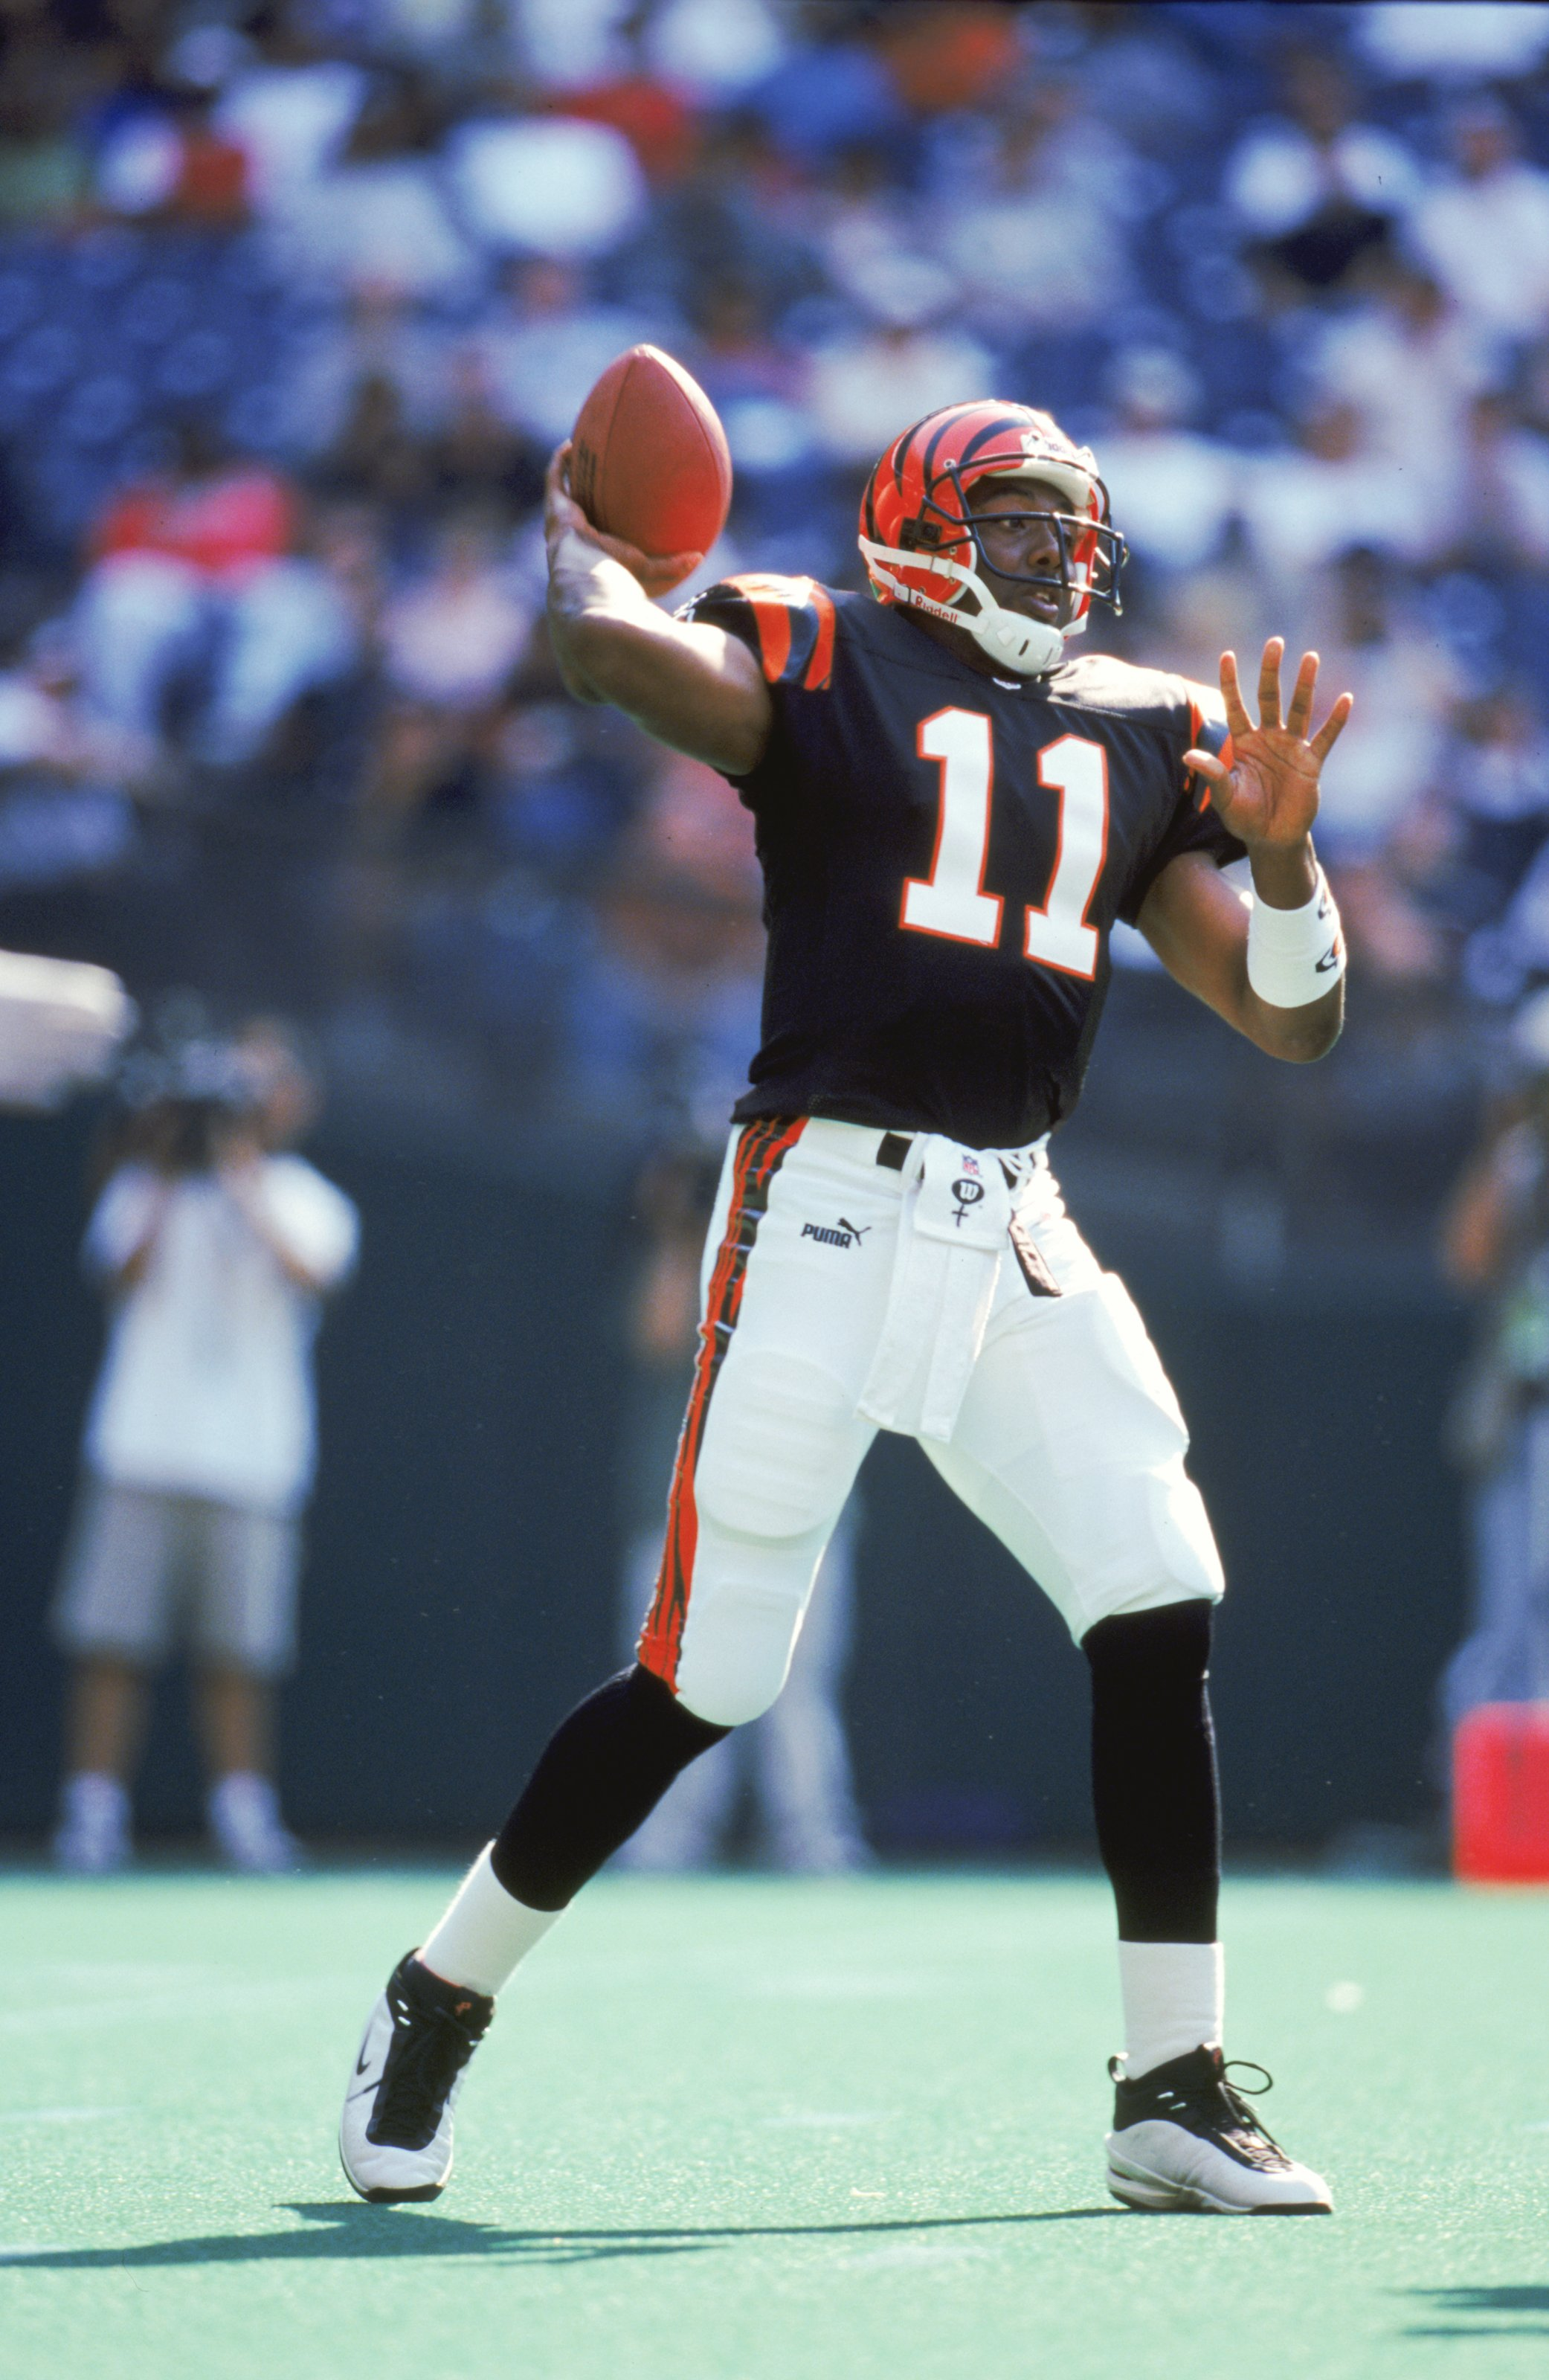 3 Oct 1999: Akili Smith #11 of the Cincinnati Bengals passes the ball during a game against the St. Louis Rams at the Riverfront Stadium in Cincinnati, Ohio. The Rams defeated the Bengals 38-10. Mandatory Credit: Andy Lyons  /Allsport